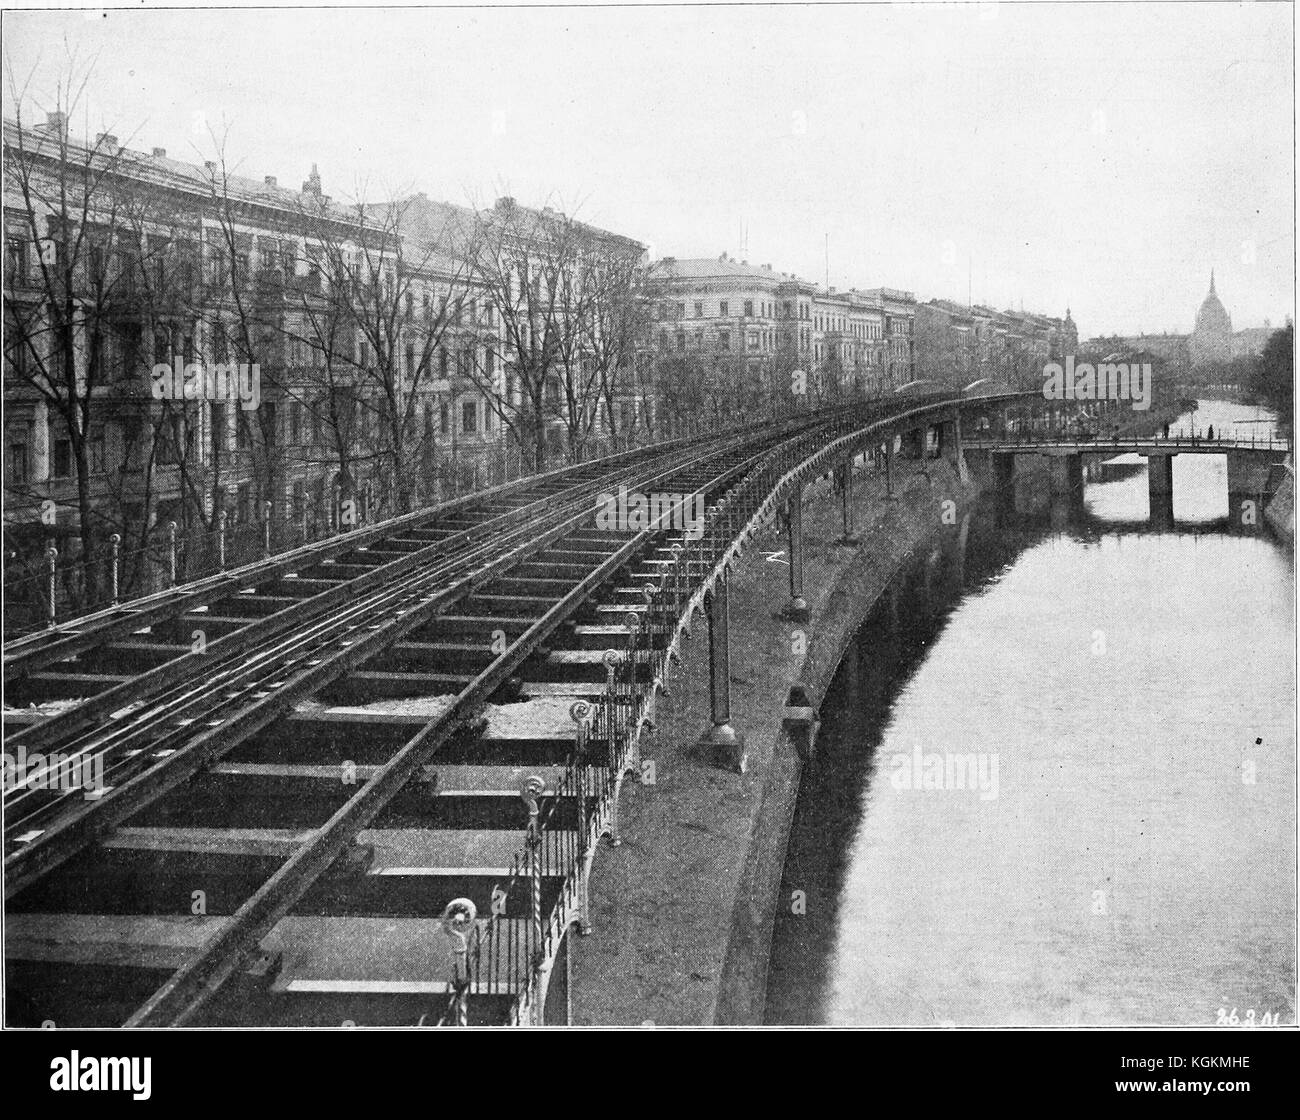 Engraved image from a photograph of the Berlin Elevated Railway, an electric train system in Berlin, Germany, 1884. - Stock Image